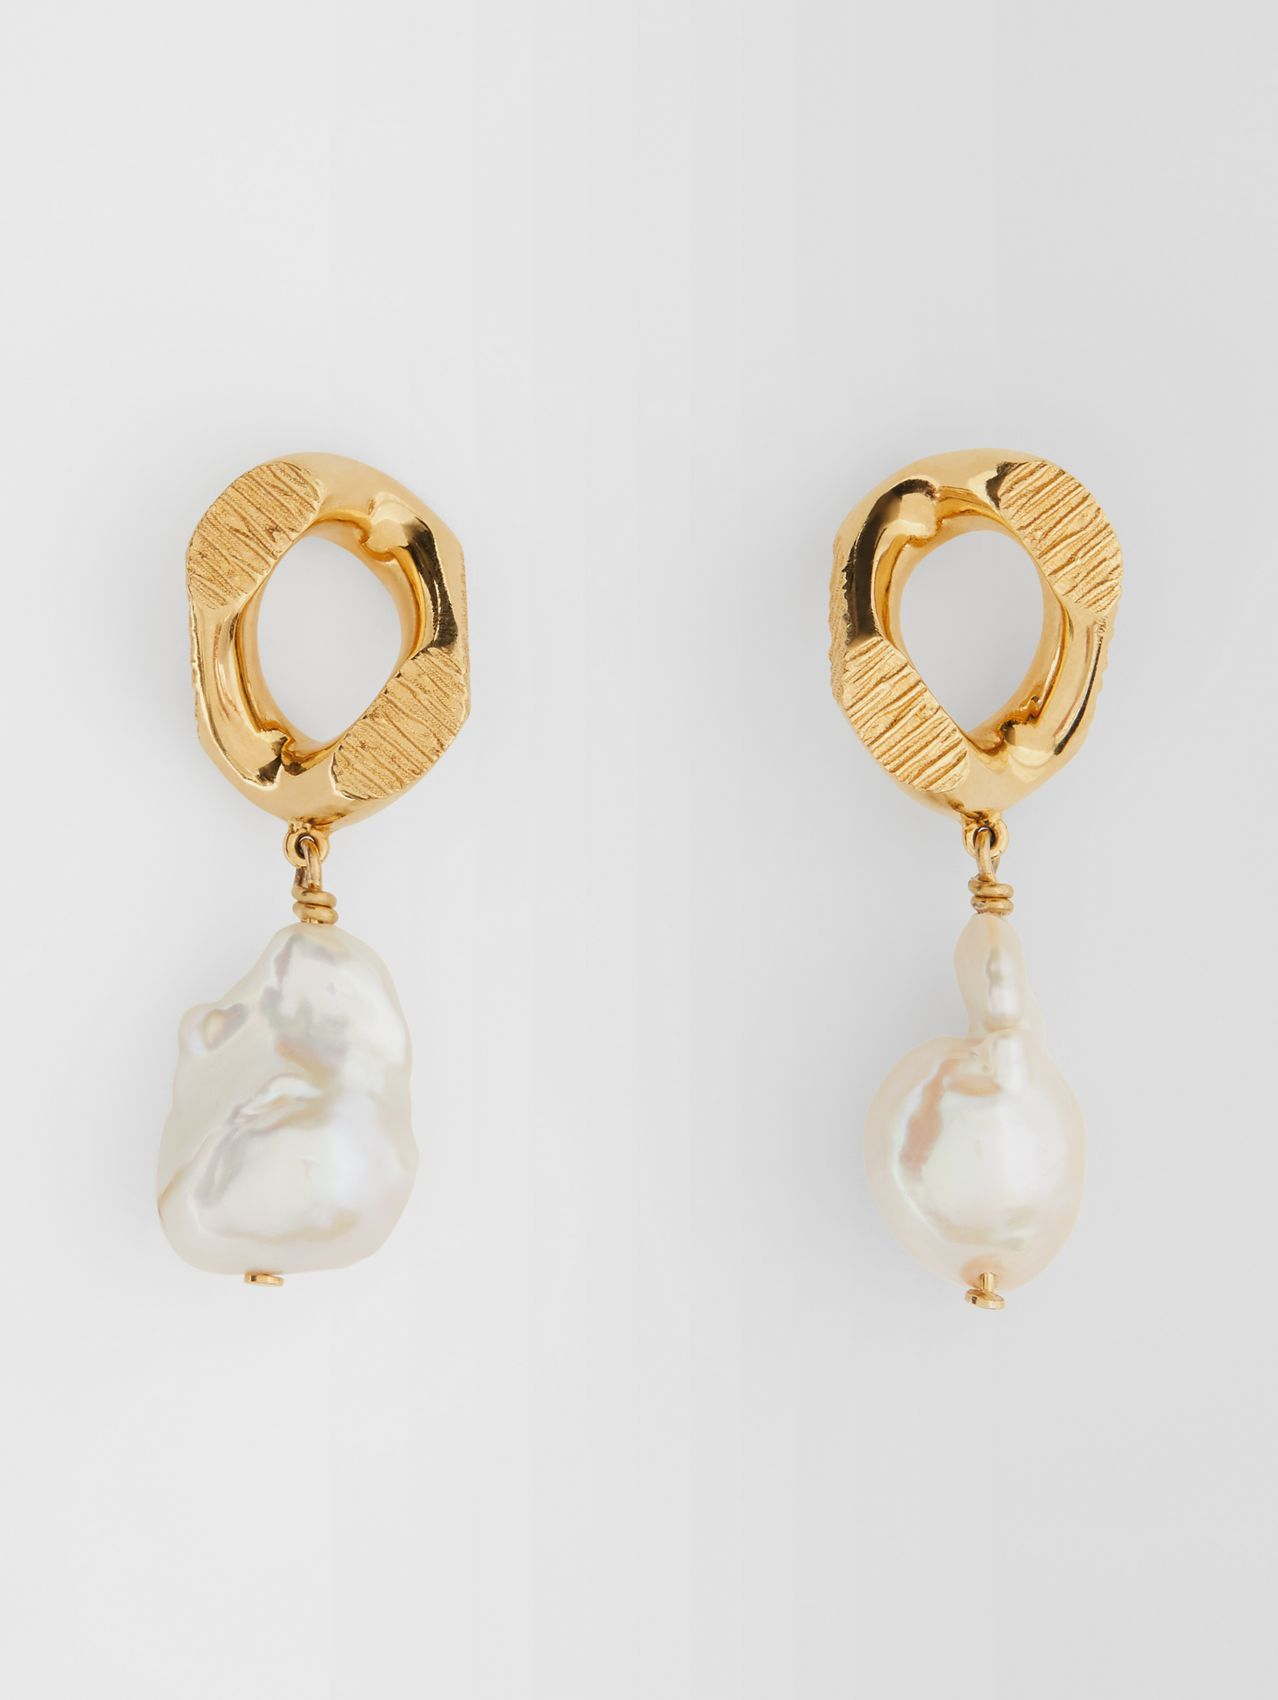 Pearl Detail Gold-plated Chain-link Earrings in Light Gold/white